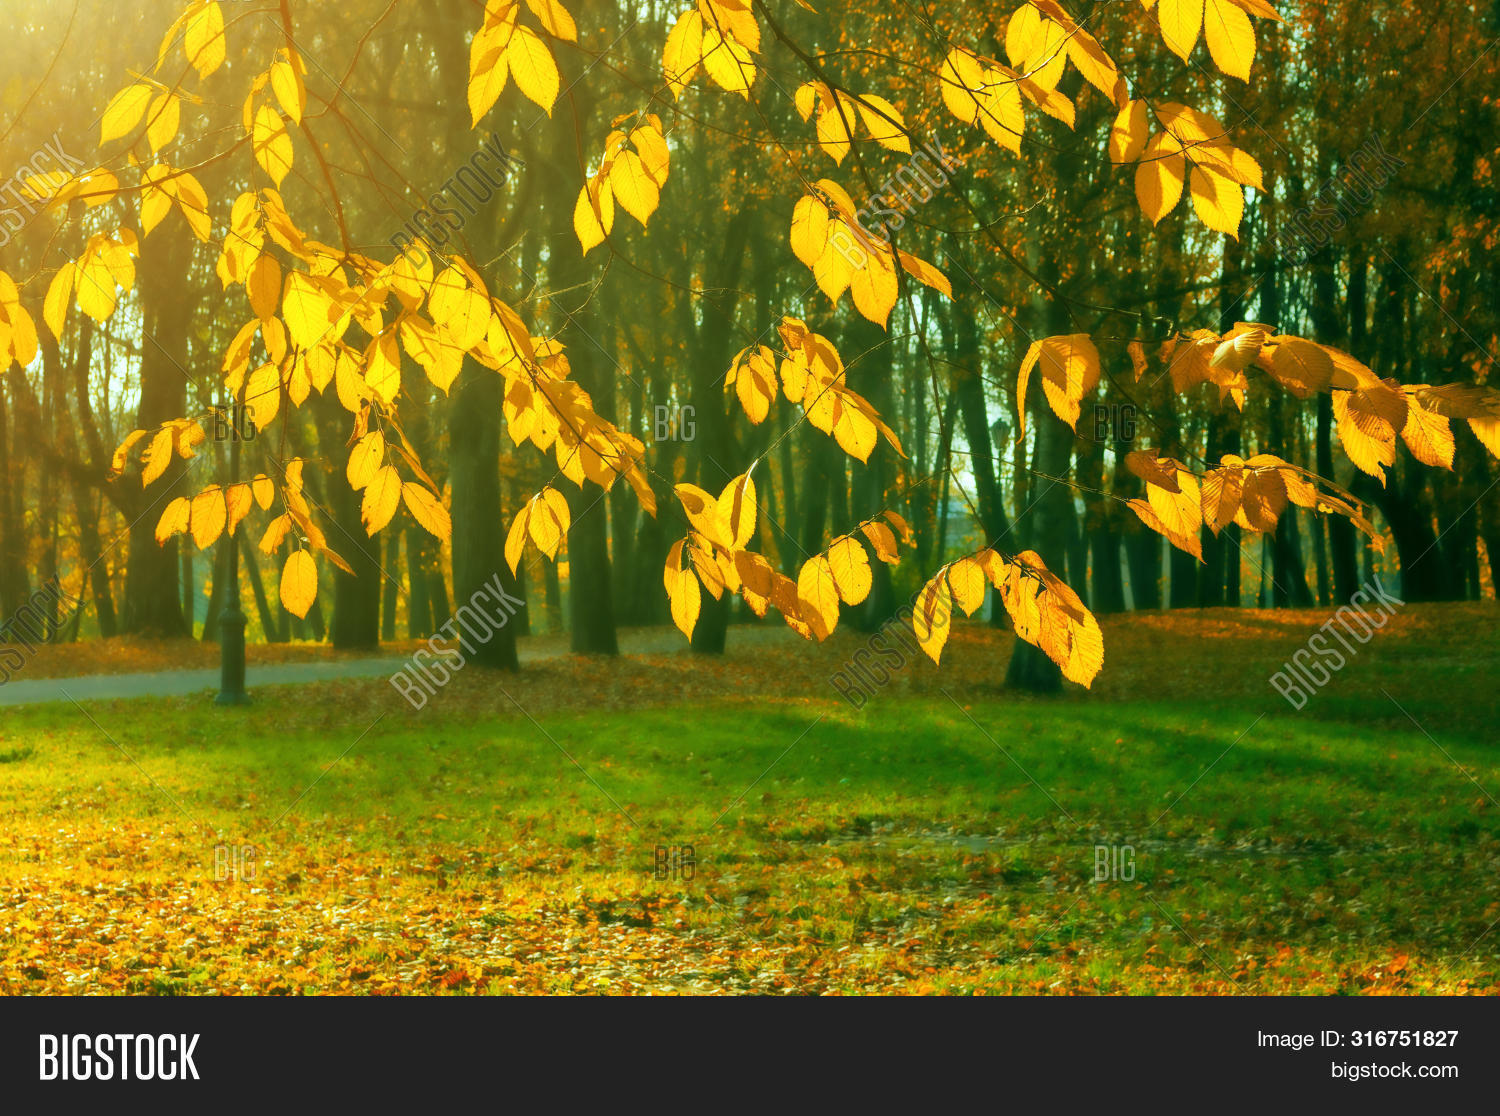 fall-alley,autumn,fall-background,beautiful,bright,city,fall-color,day,dry,fall,fall-foliage,footpath,foreground,fall-forest,gold,golden,fall-grove,fall-landscape,leaf,fall-leaves,fall-maple,nature,nobody,fall-november,october,orange,fall-outdoors,fall-panorama,fall-park,fall-quiet,red,russian,fall-scene,fall-season,september,fall-stunning,sun,fall-sunrise,sunset,tree,view,fall-wallpaper,weather,fall-yellow,yellowed